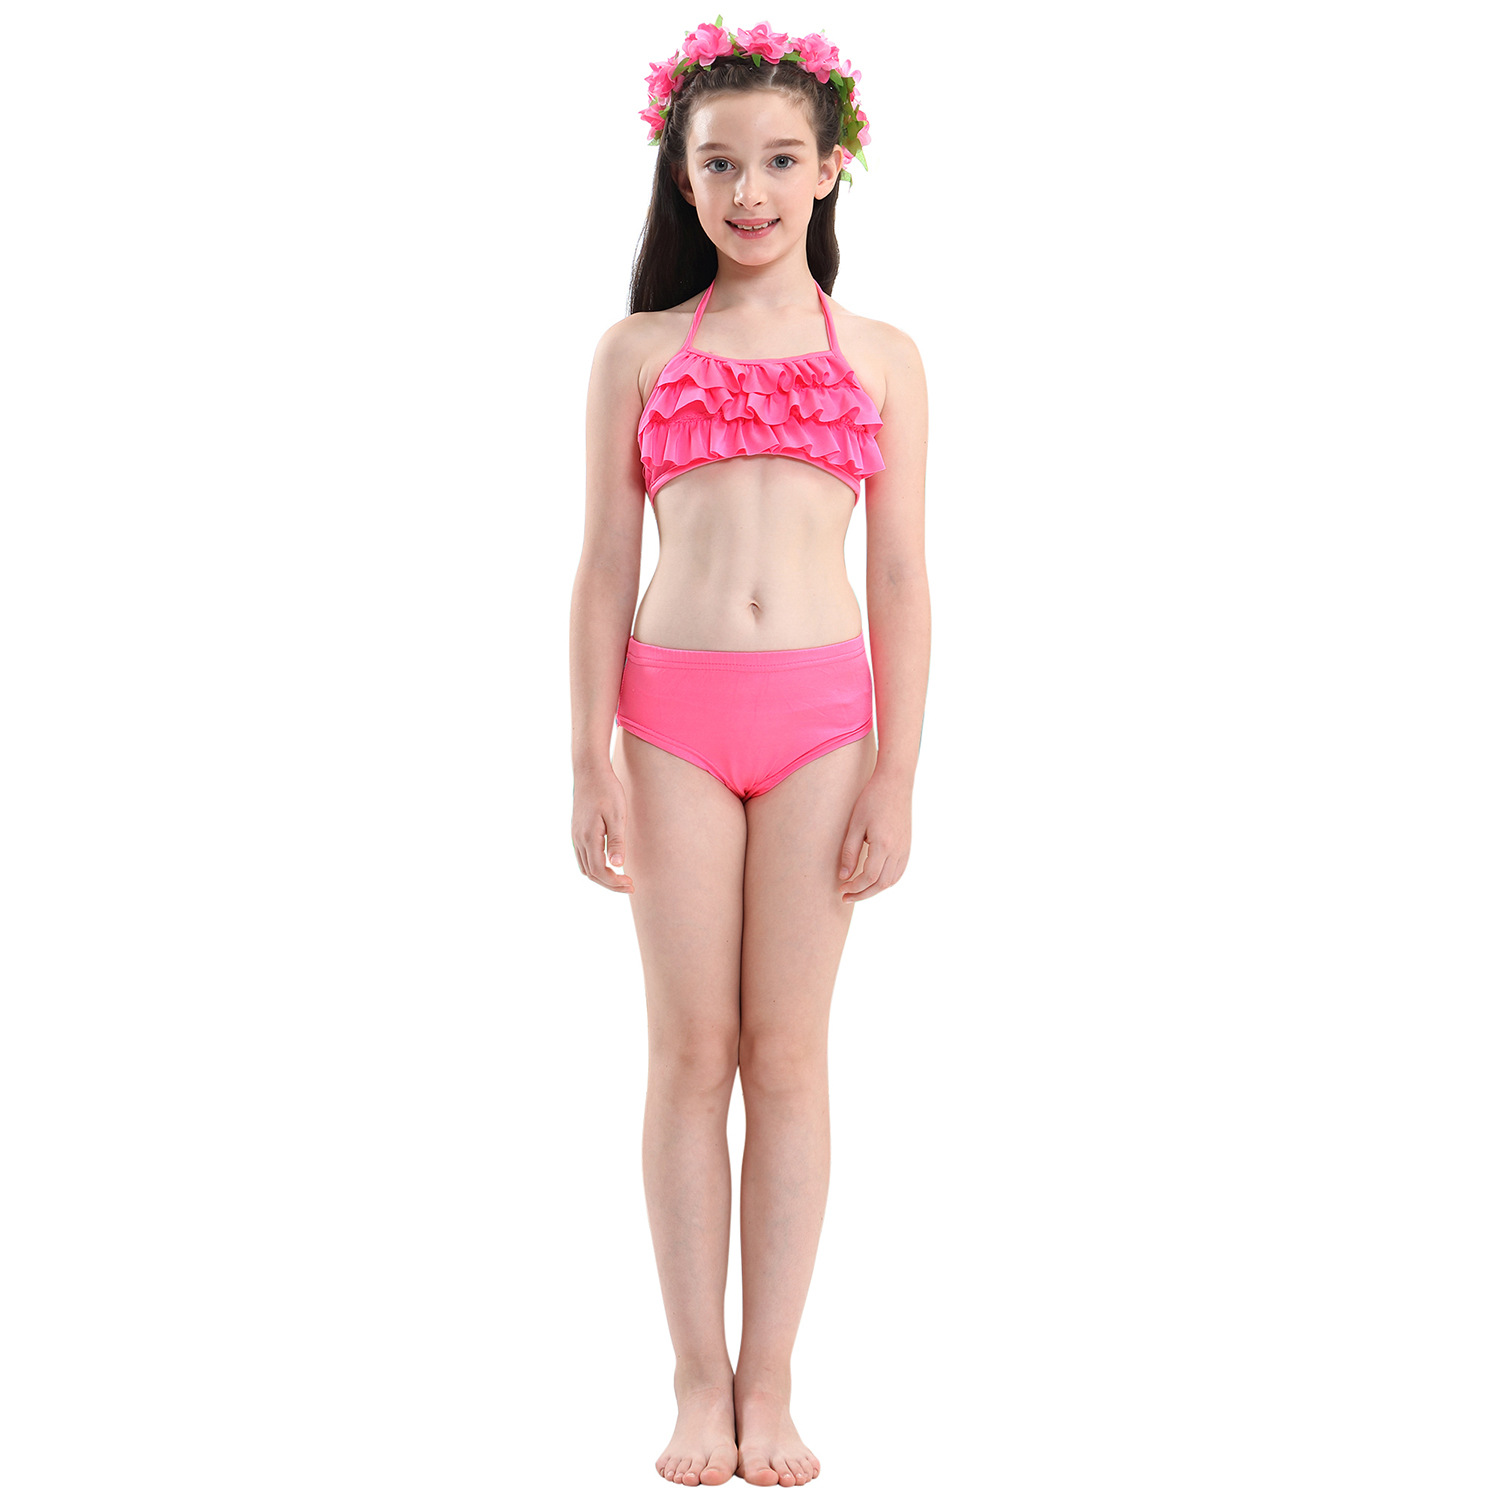 9282523209 898390851 - 4PCS/Set HOT Kids Girls Mermaid Tails with Fin Swimsuit Bikini Bathing Suit Dress for Girls With Flipper Monofin For Swim